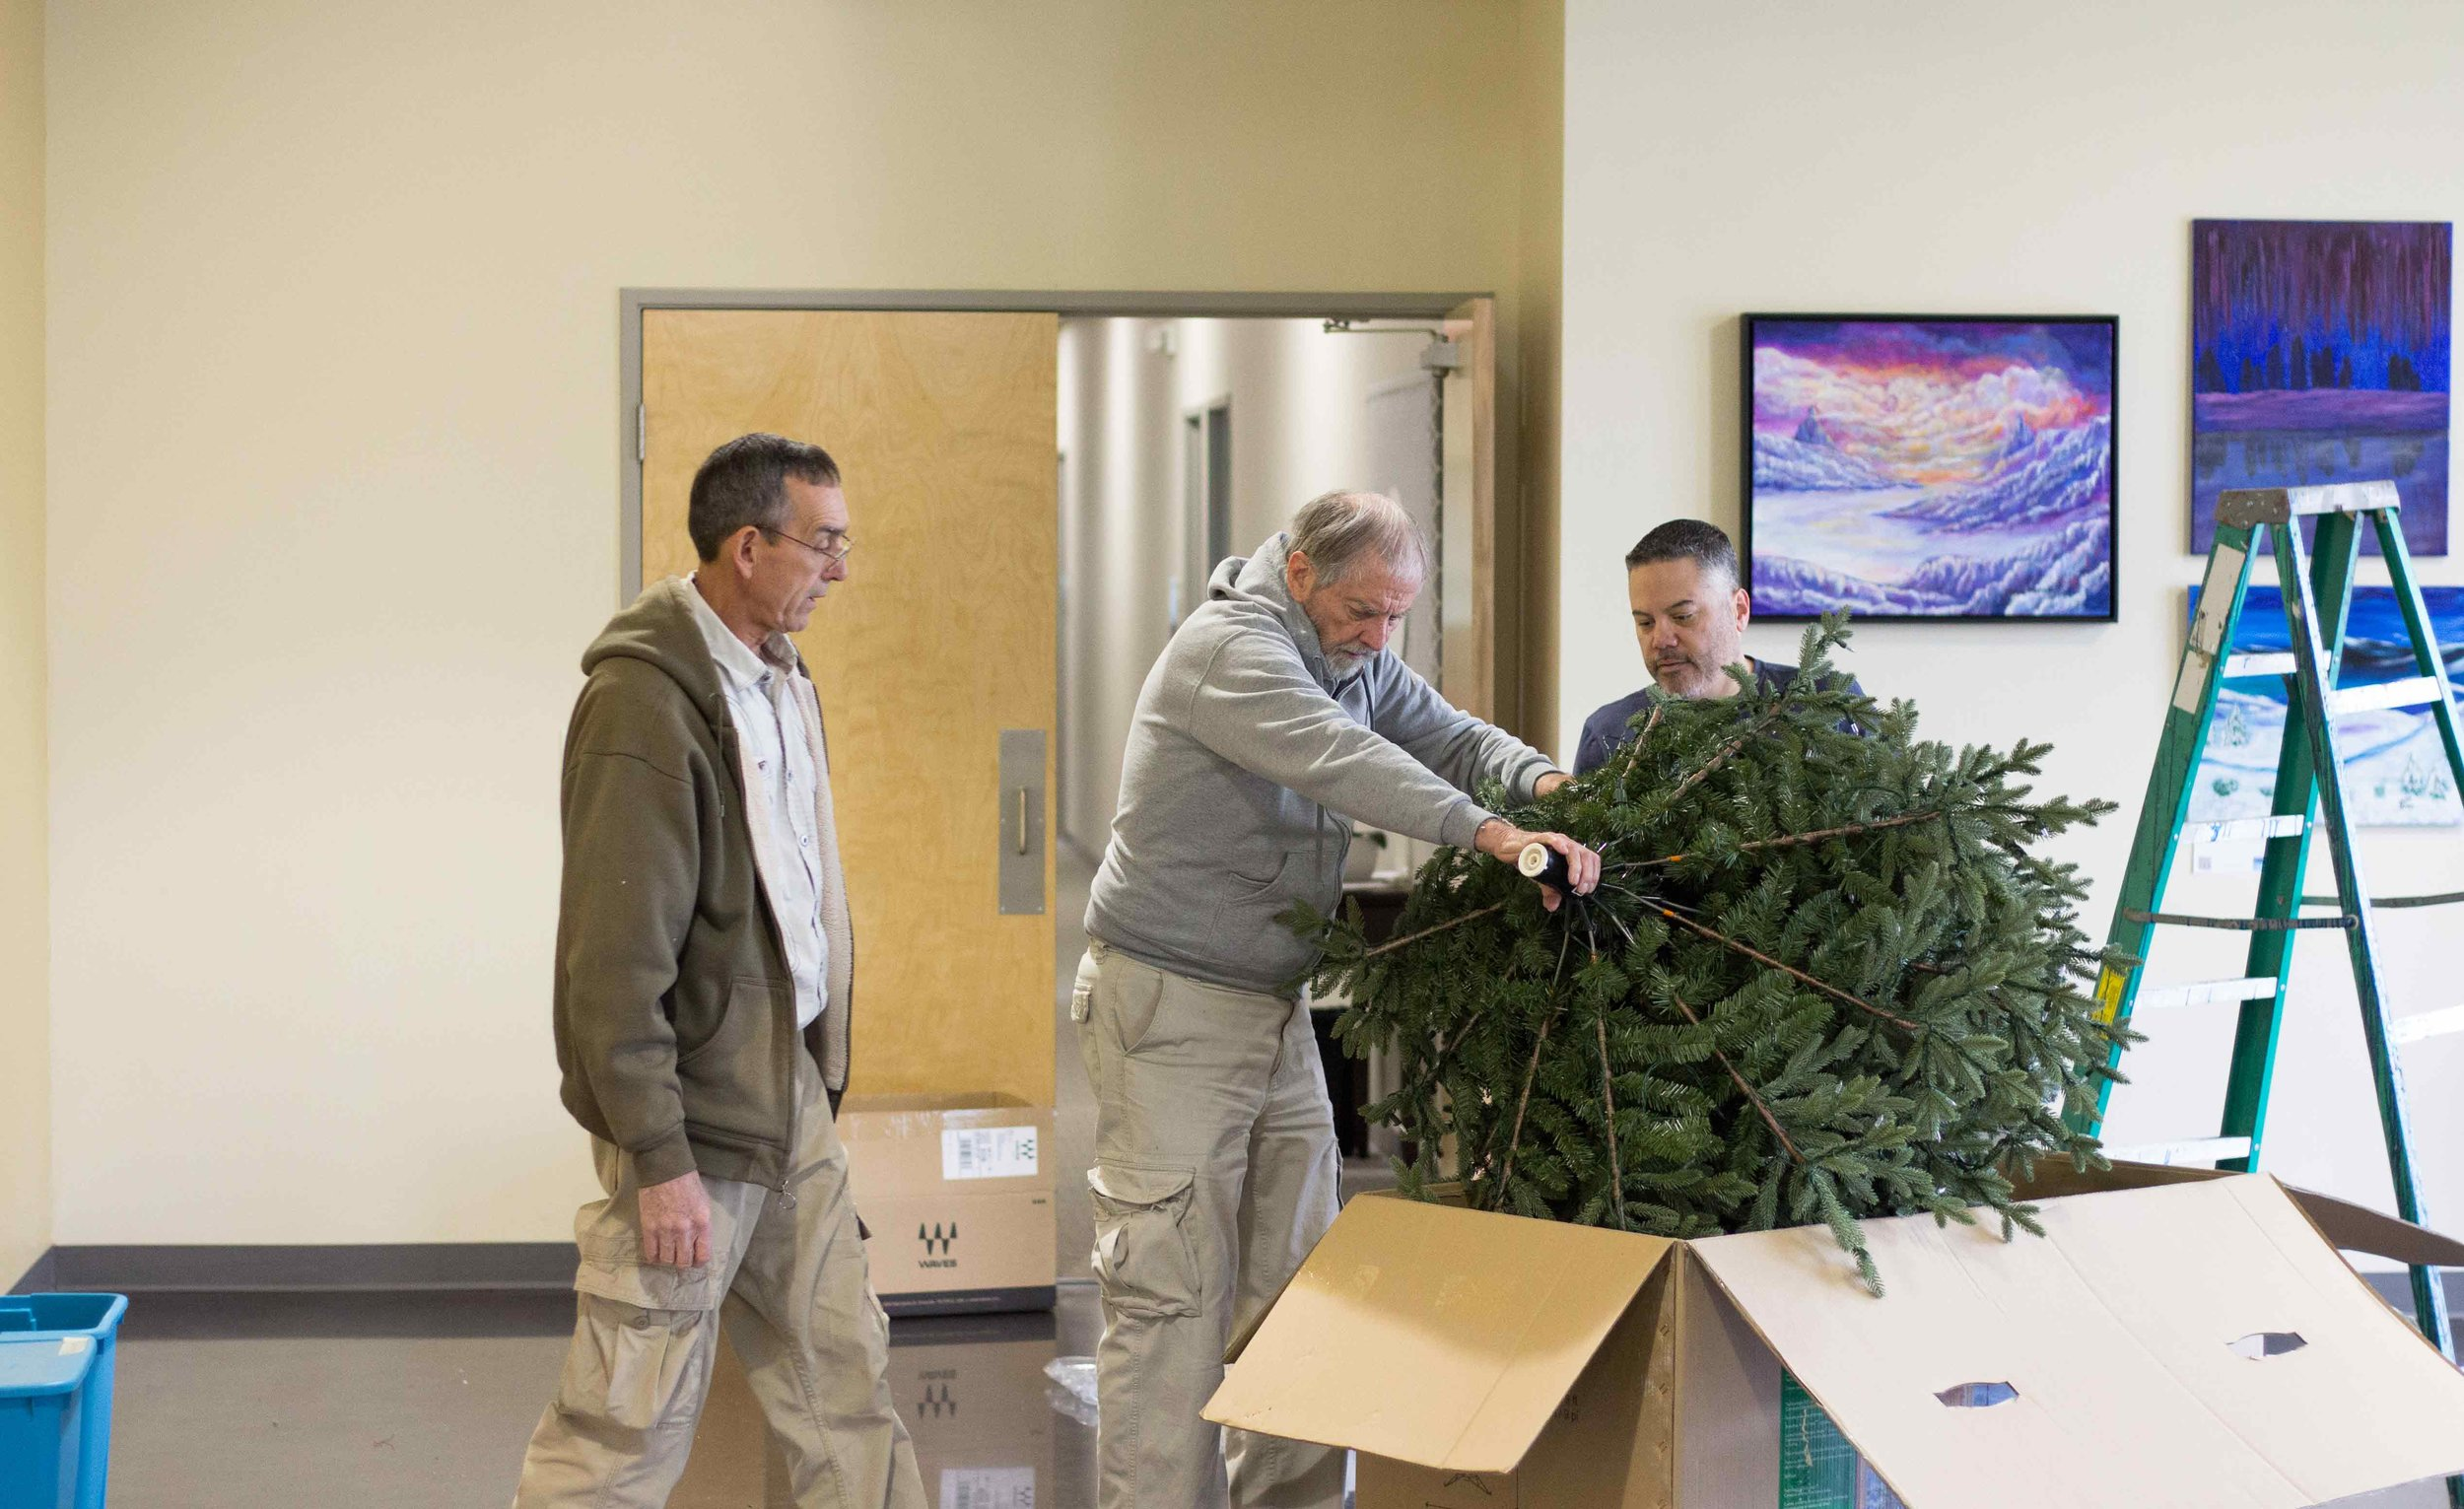 Men helping tear down Christmas decorations